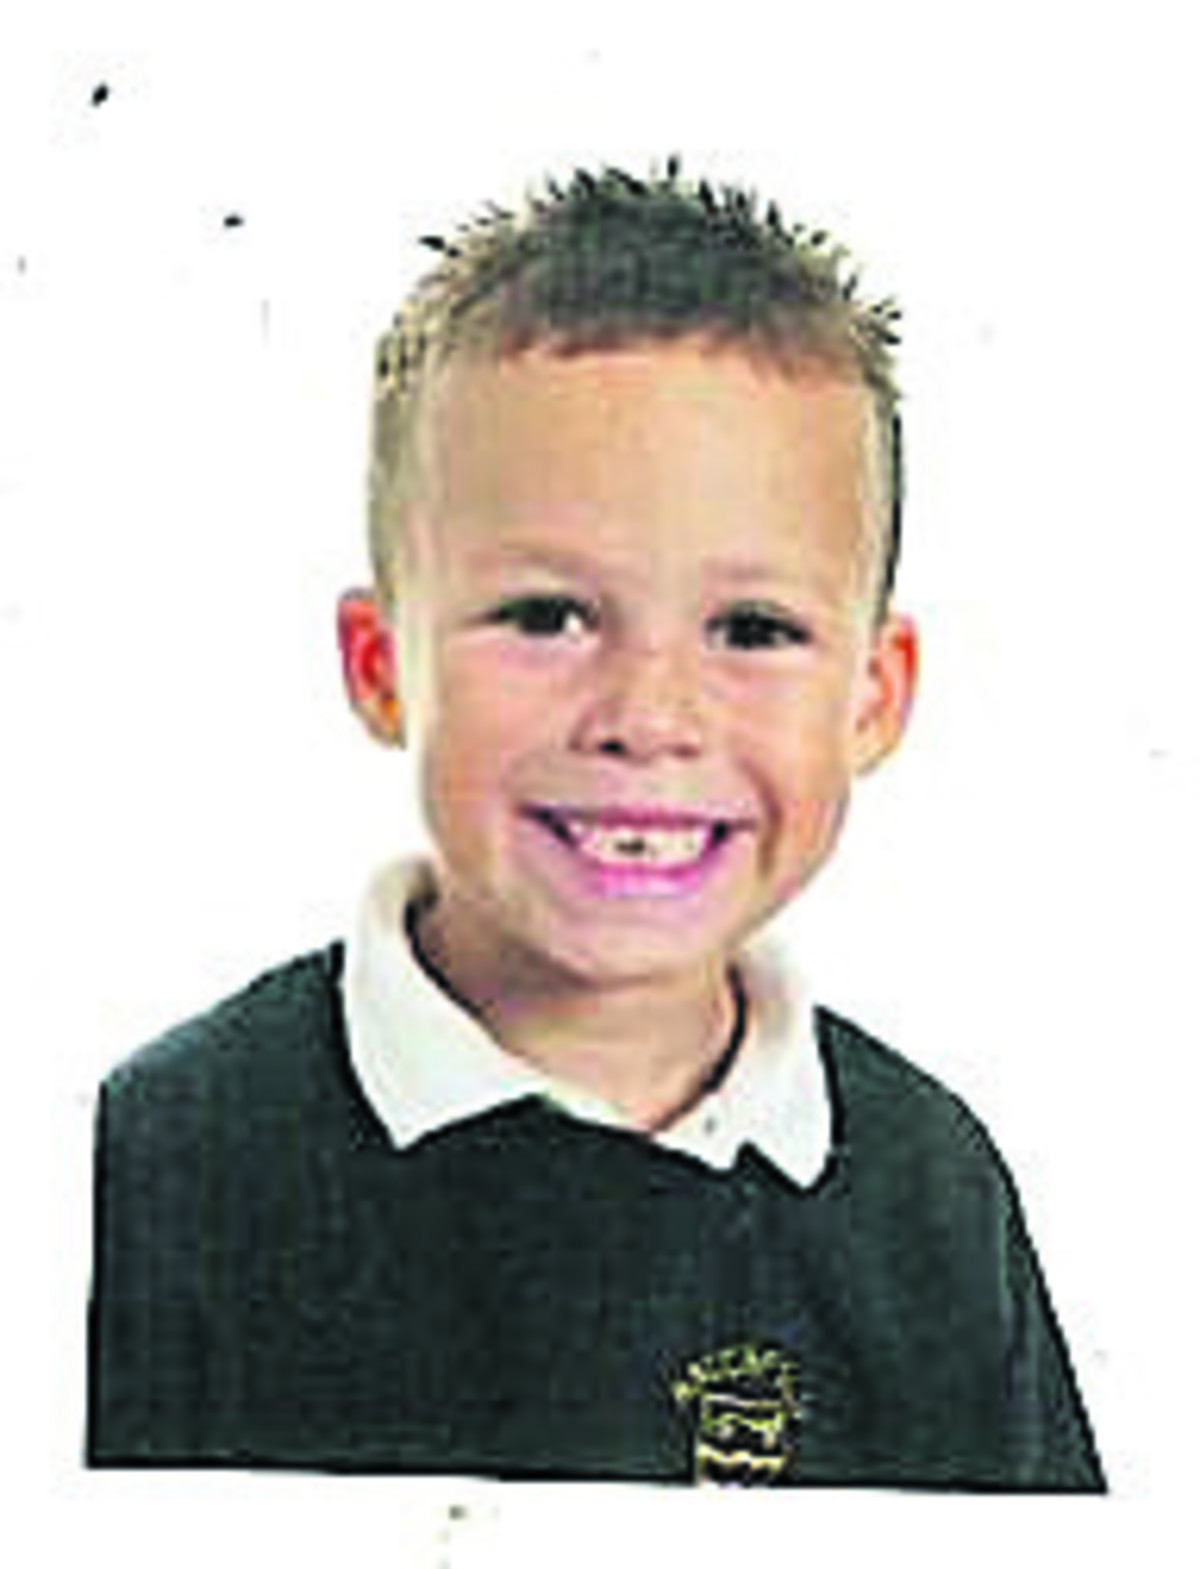 Jayden Nash, 6, killed when he was hit by car, inquest told